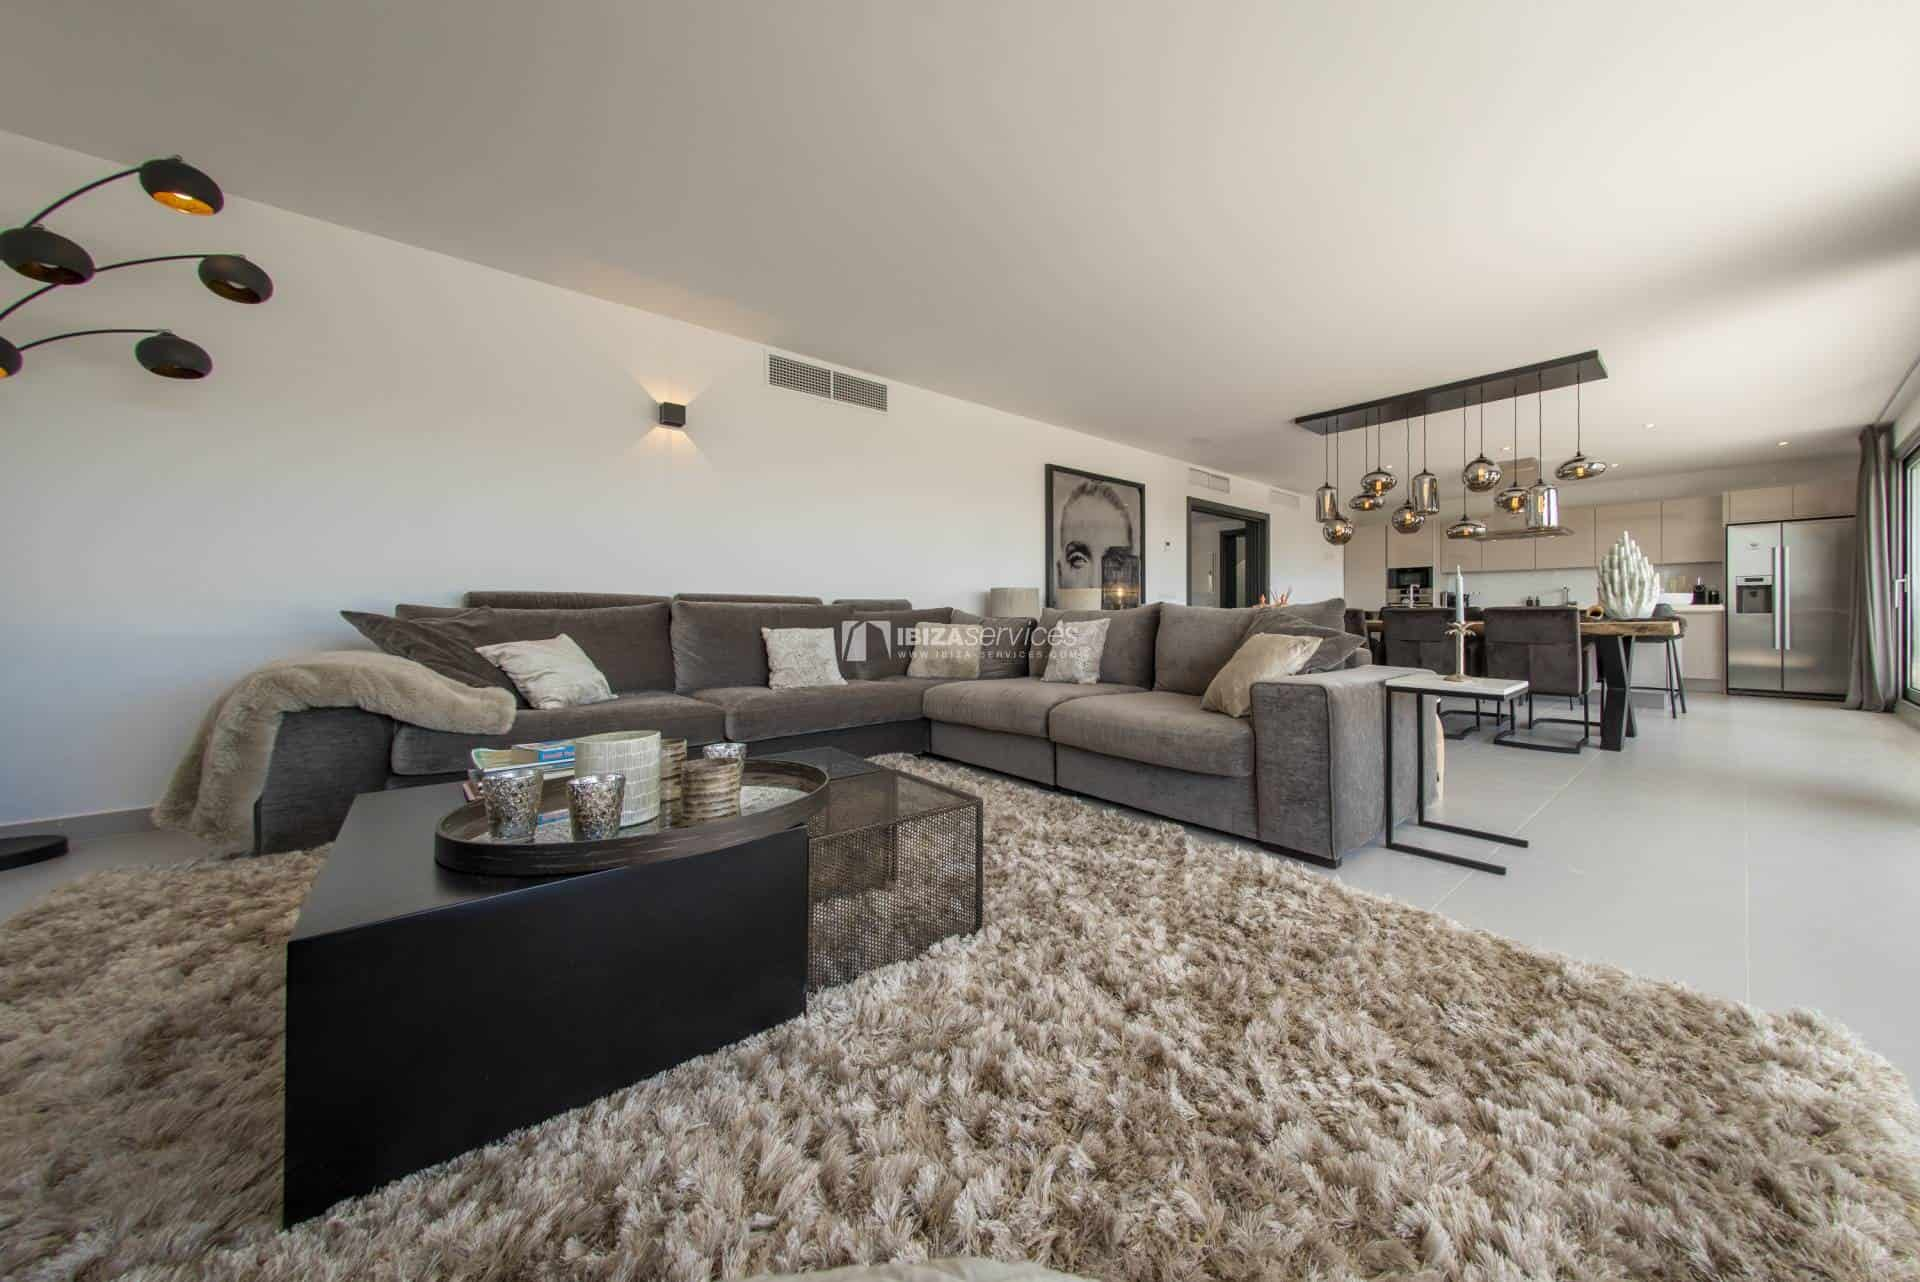 Modern penthouse 4 bedrooms for sale Jesus perspectiva 20